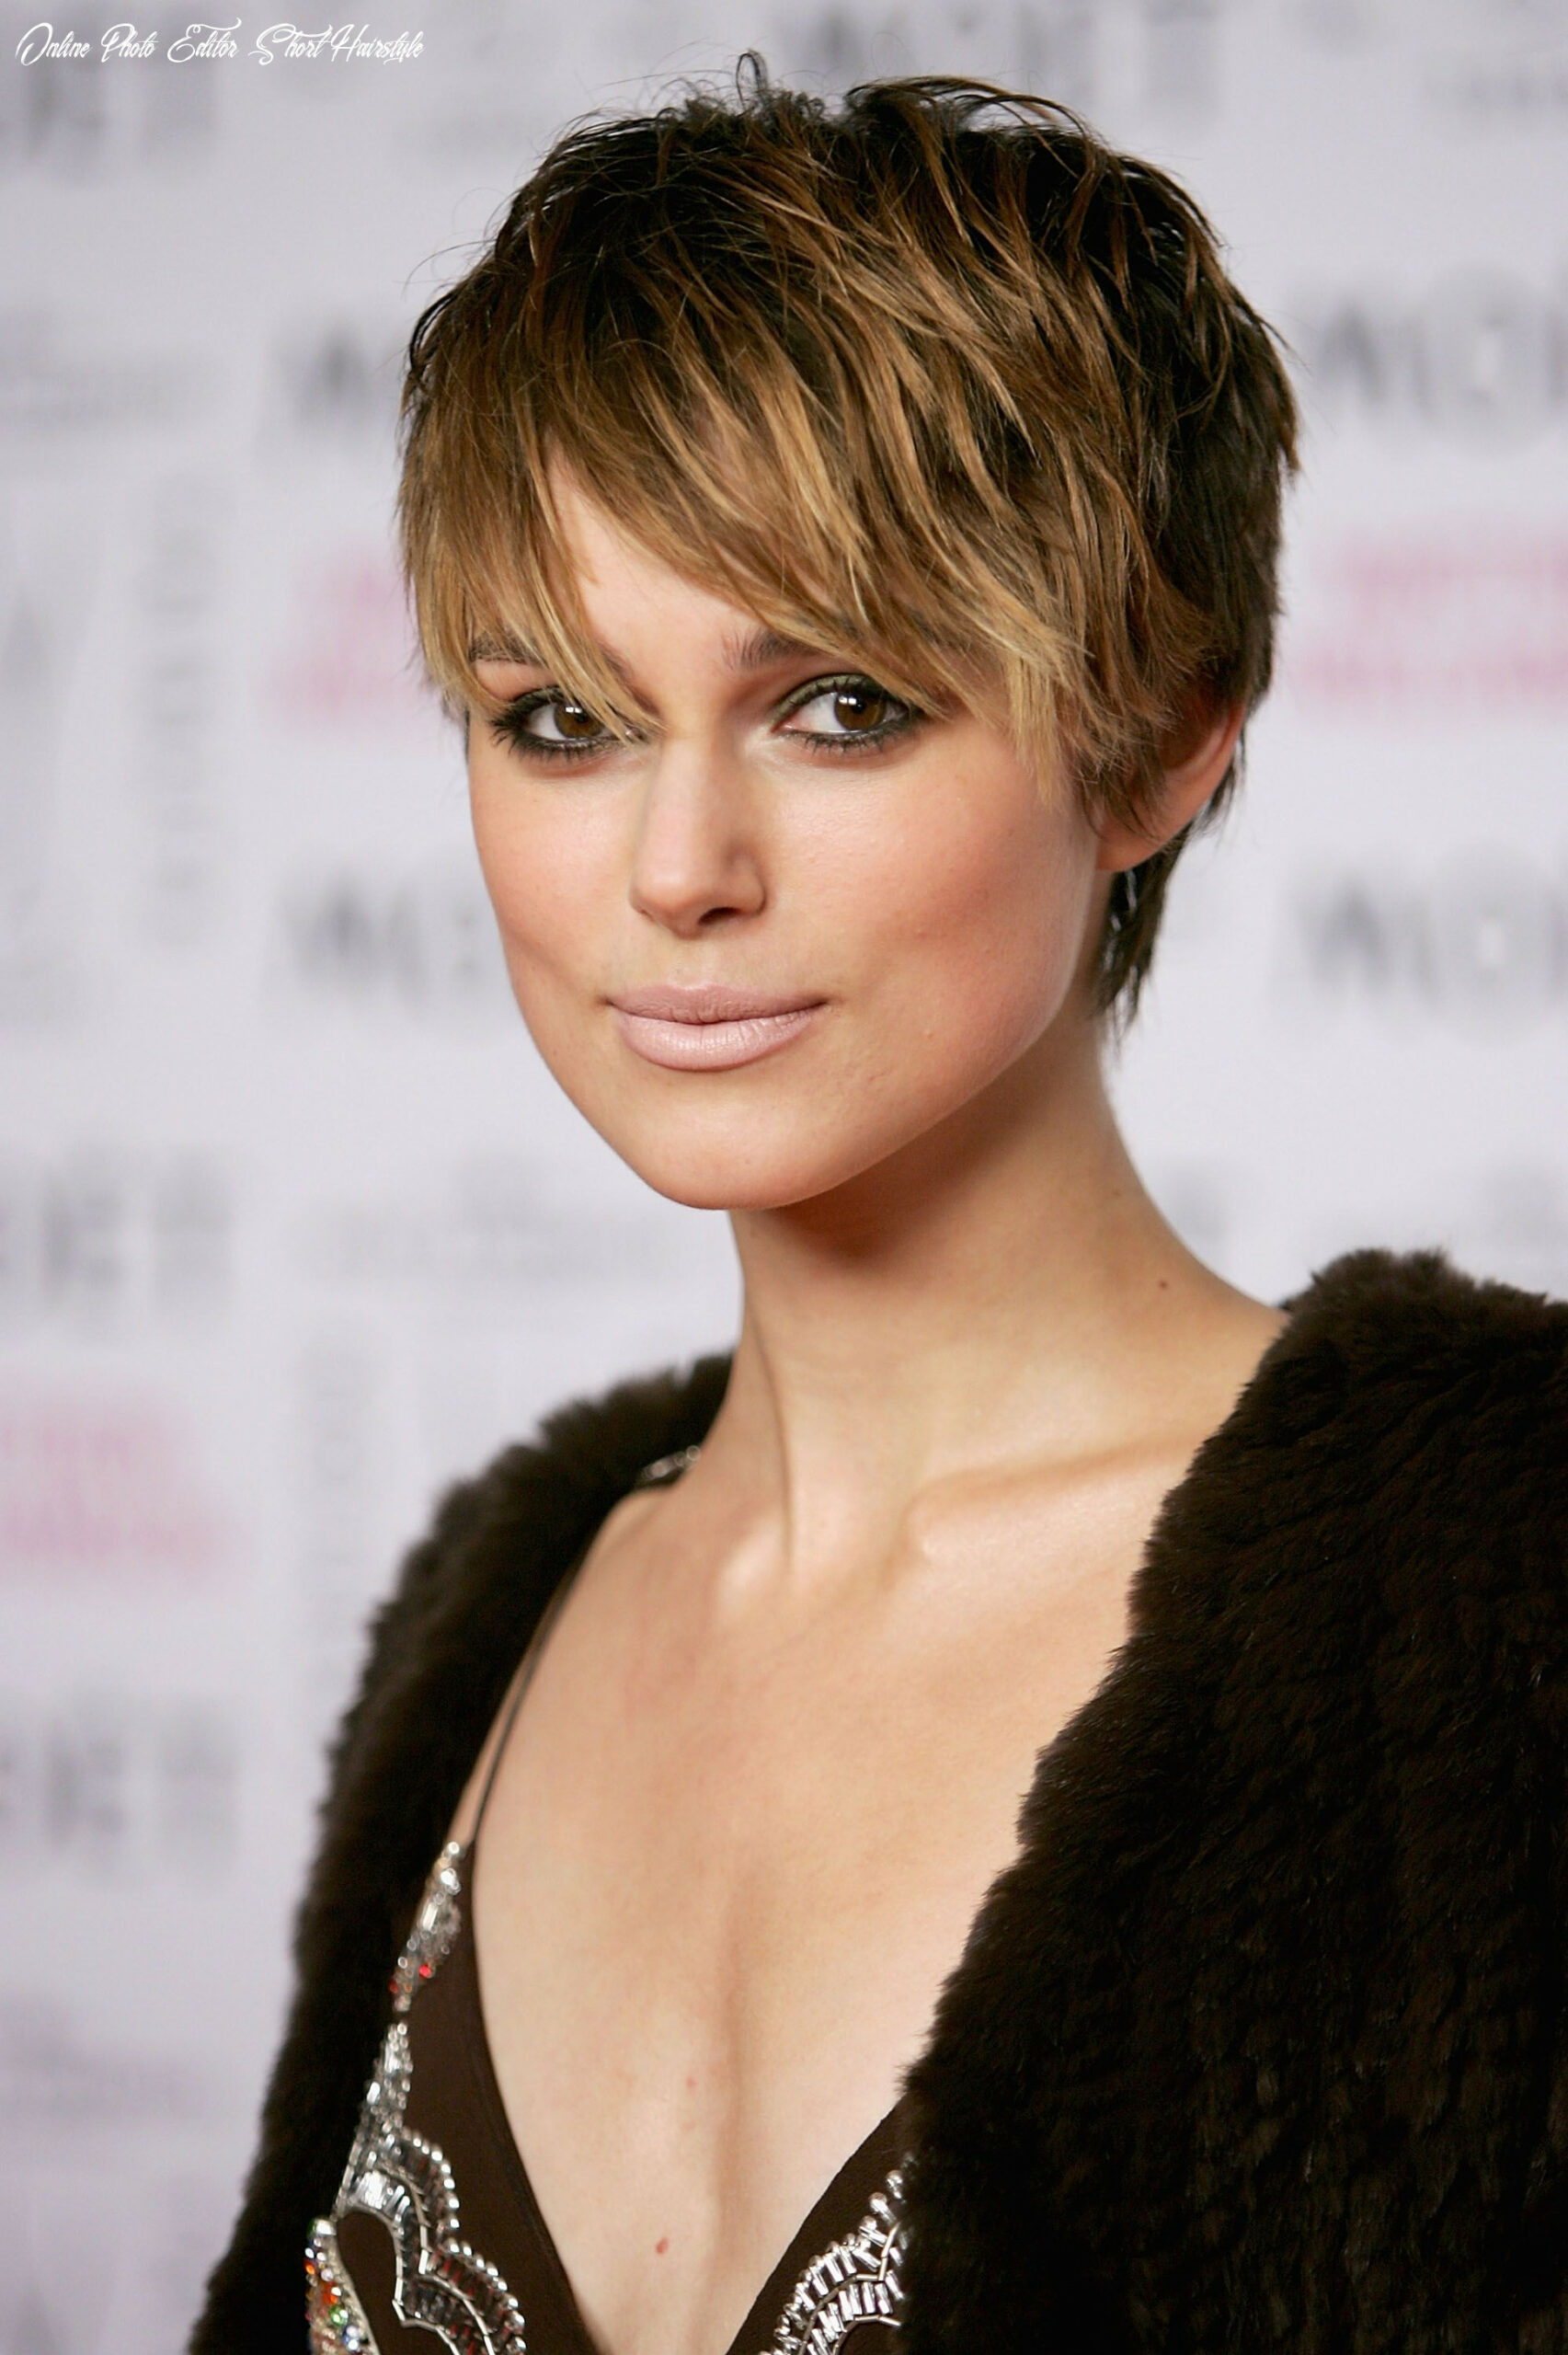 12 Best Short Hairstyles, Haircuts & Short Hair Ideas for 12